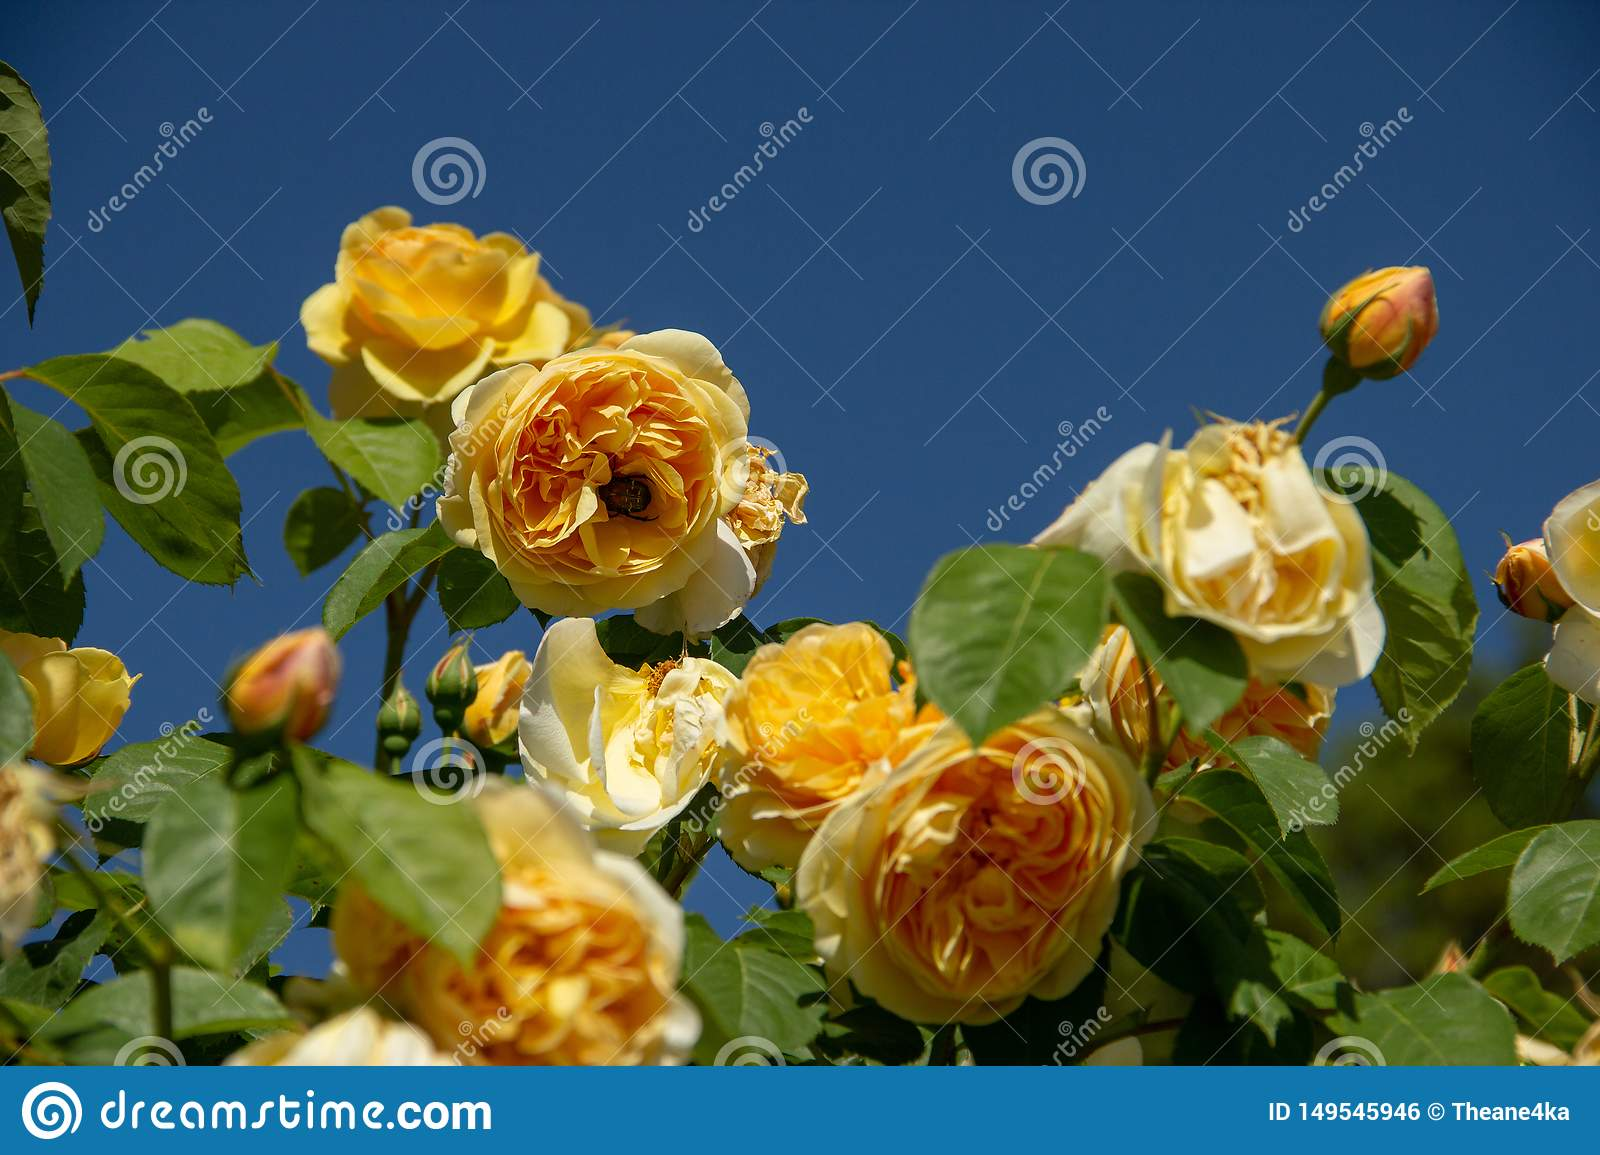 Yellow rose with bumble bee on blue sky background